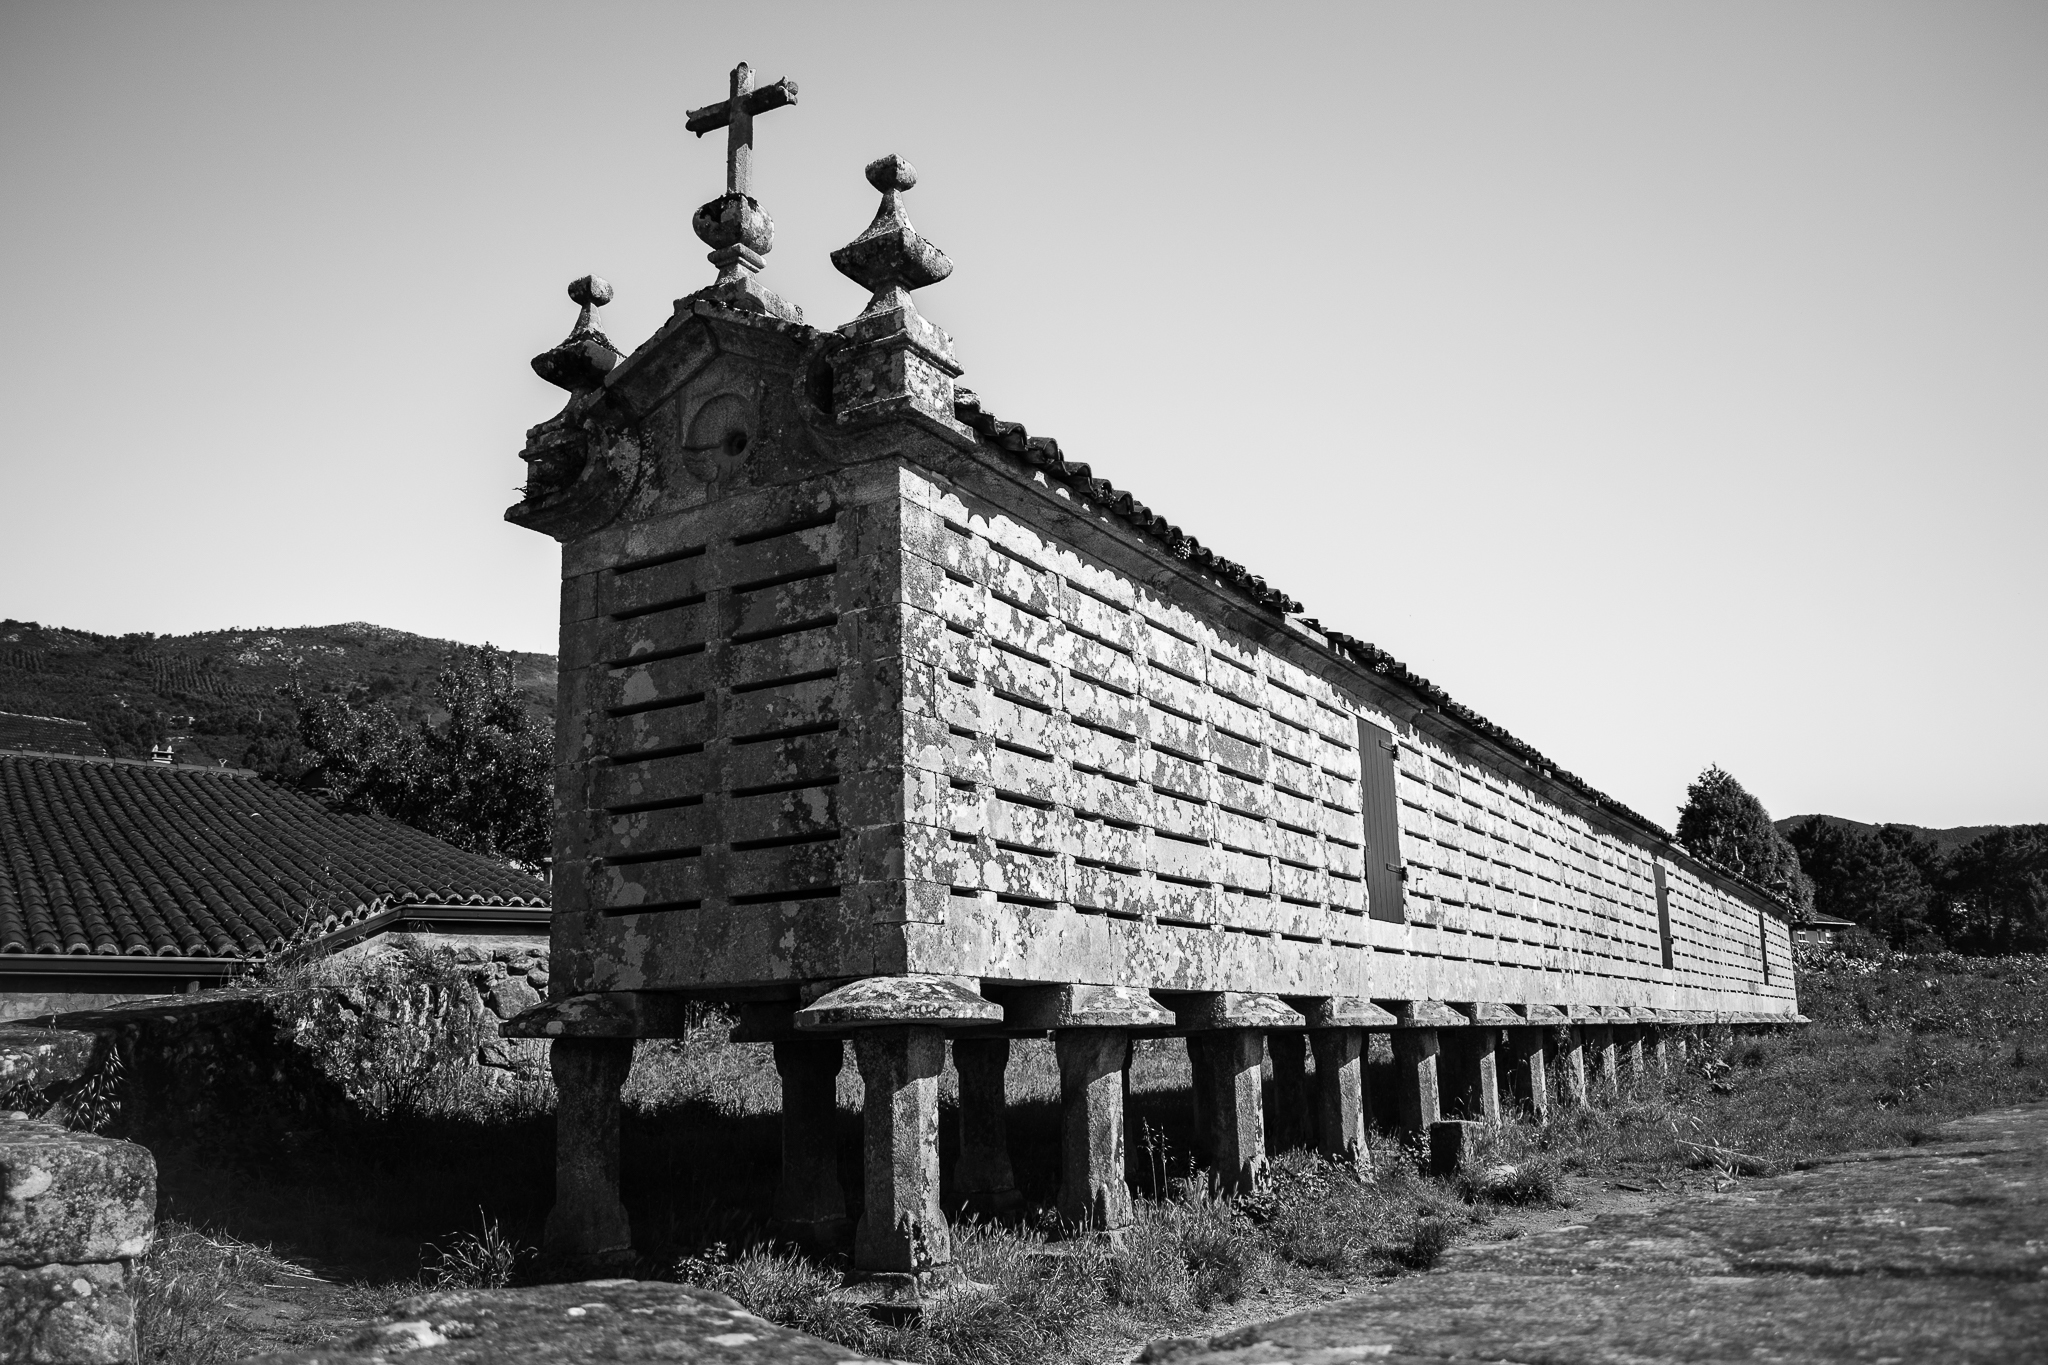 The hórreo of Carnota is, together with the one of Lira and Araño, one of the largest in Galicia. Built in the 18. century and declared National Monument, it has a total length of more than 34 meters. The role of the hórreos was to separate the food from the ground to distance it from the animals and improve its conservation. Normally, the largest hórreos were located near a church, which kept 10% of the crops through a tax known as the tithe.